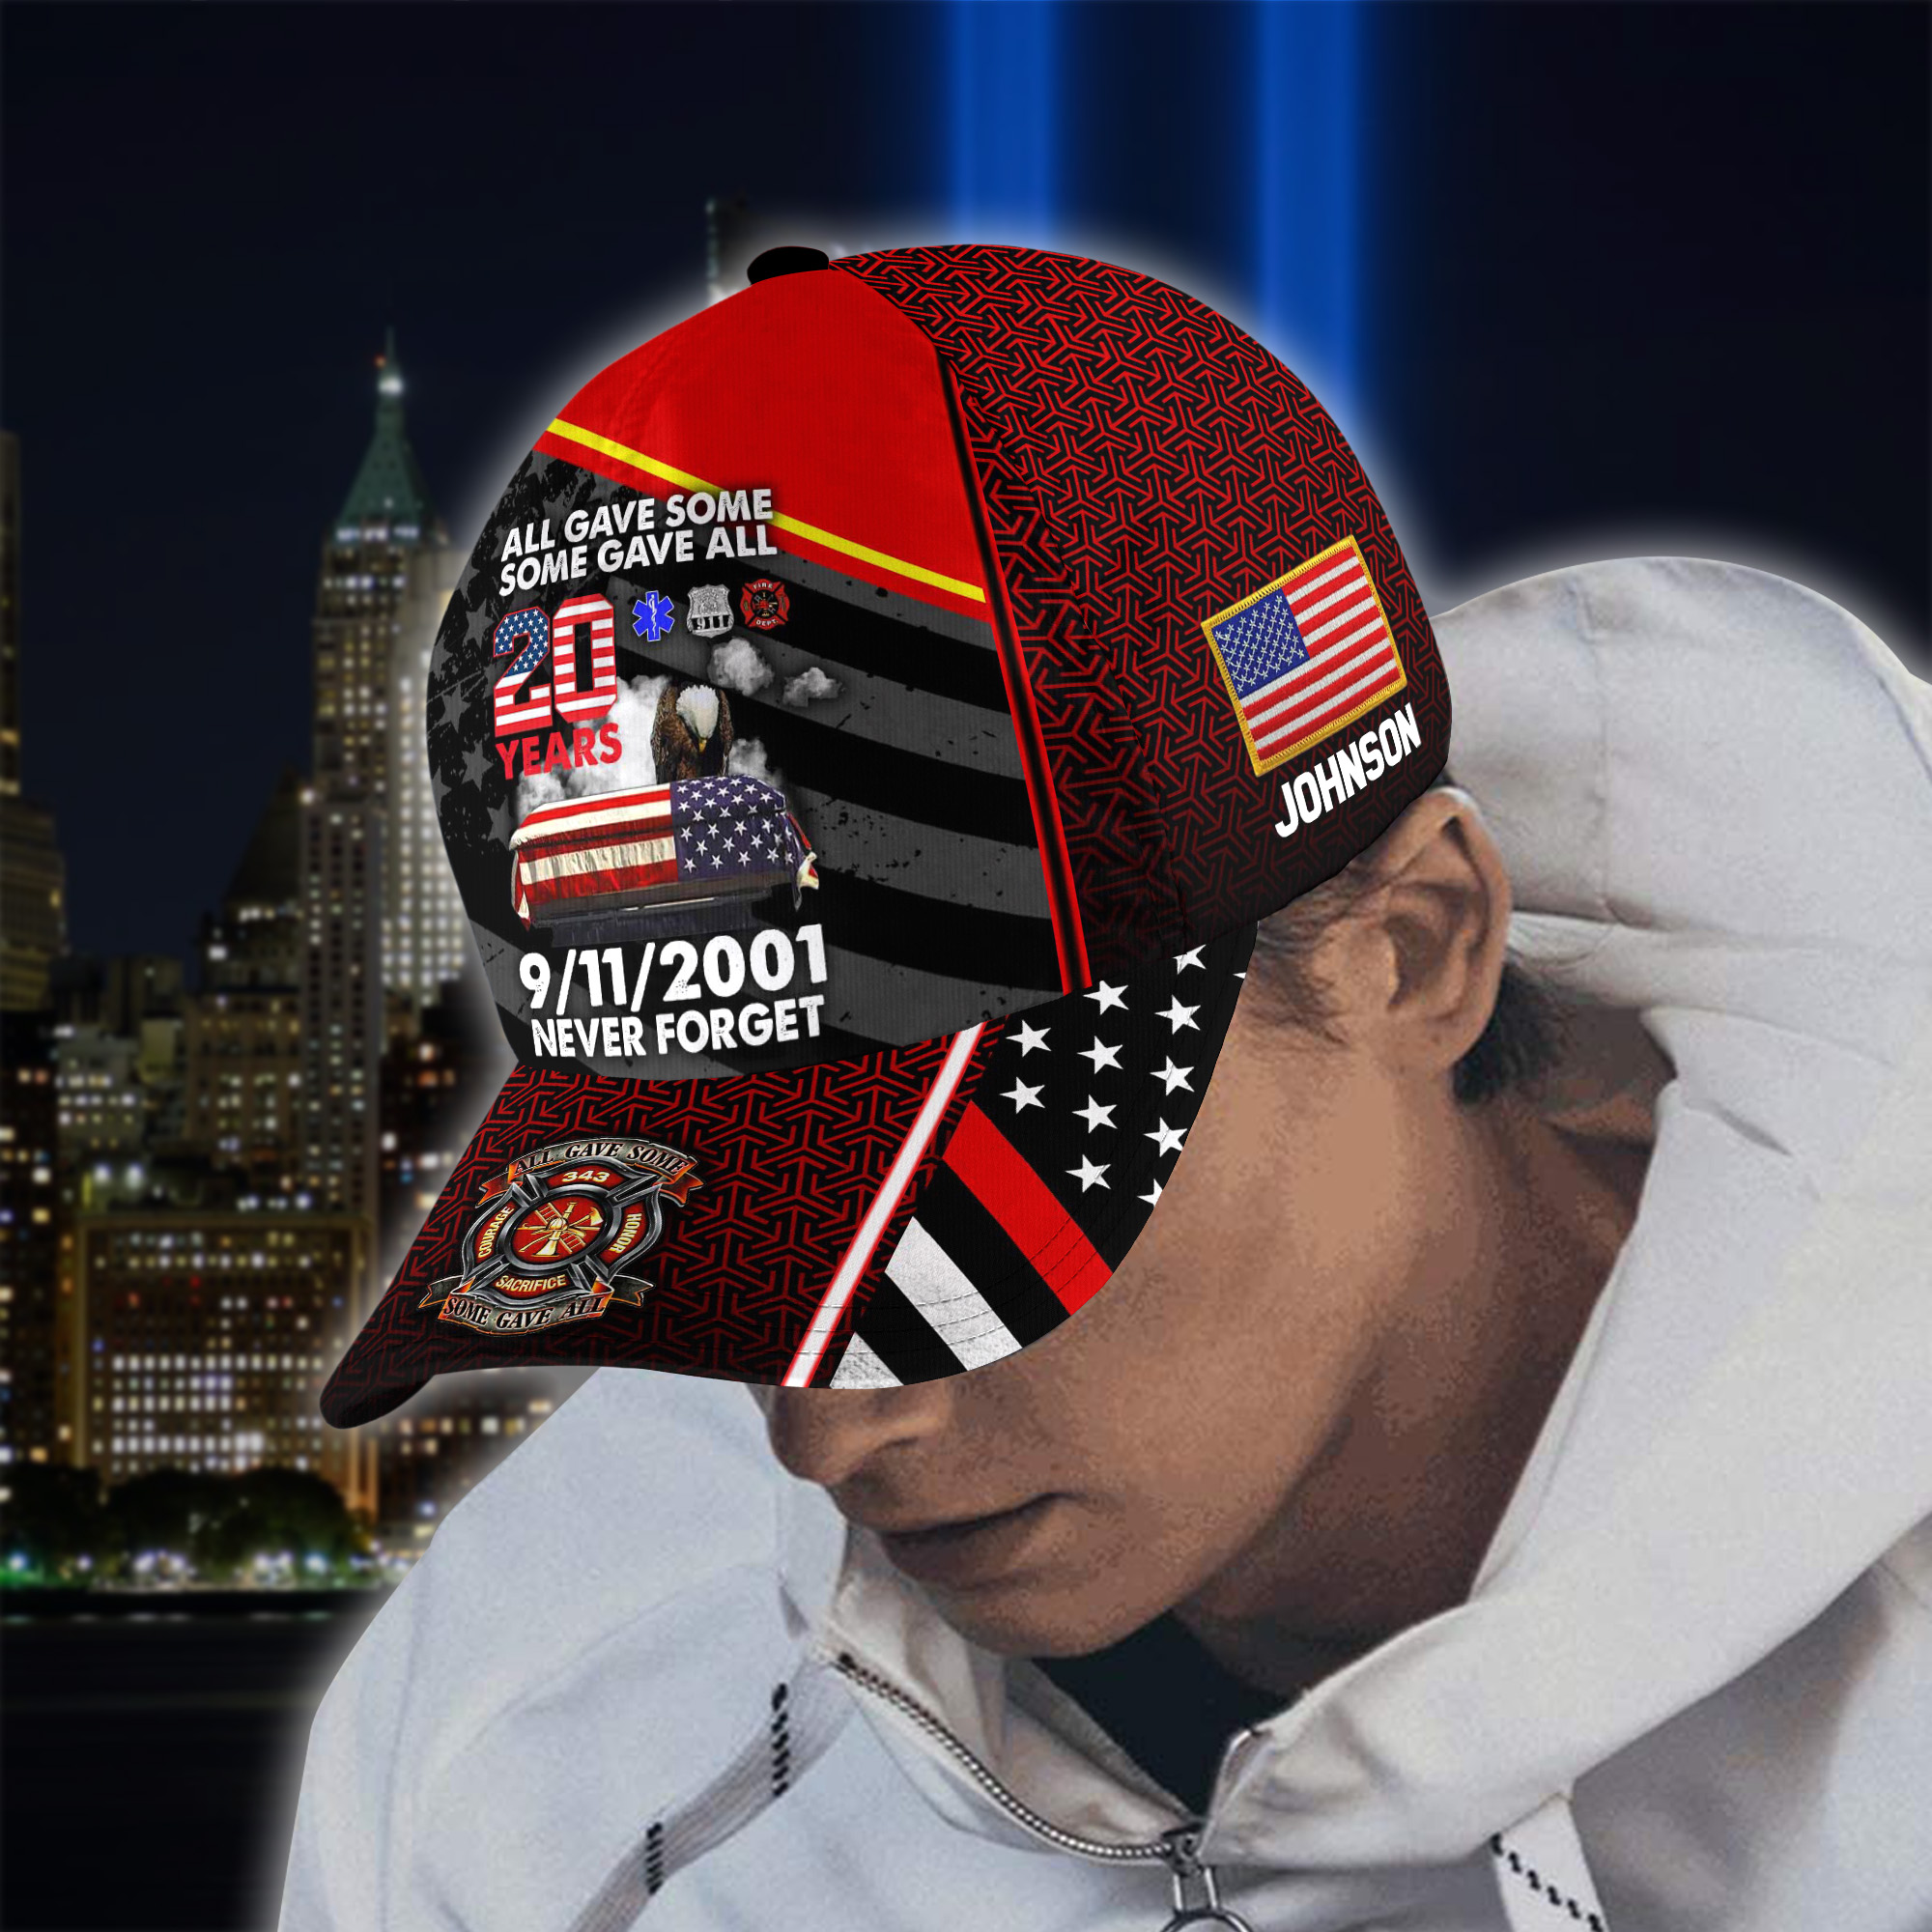 All Gave Some Some Gave All 20 Year Remembrace 9 11 2001 Never Forget custom name Cap 1